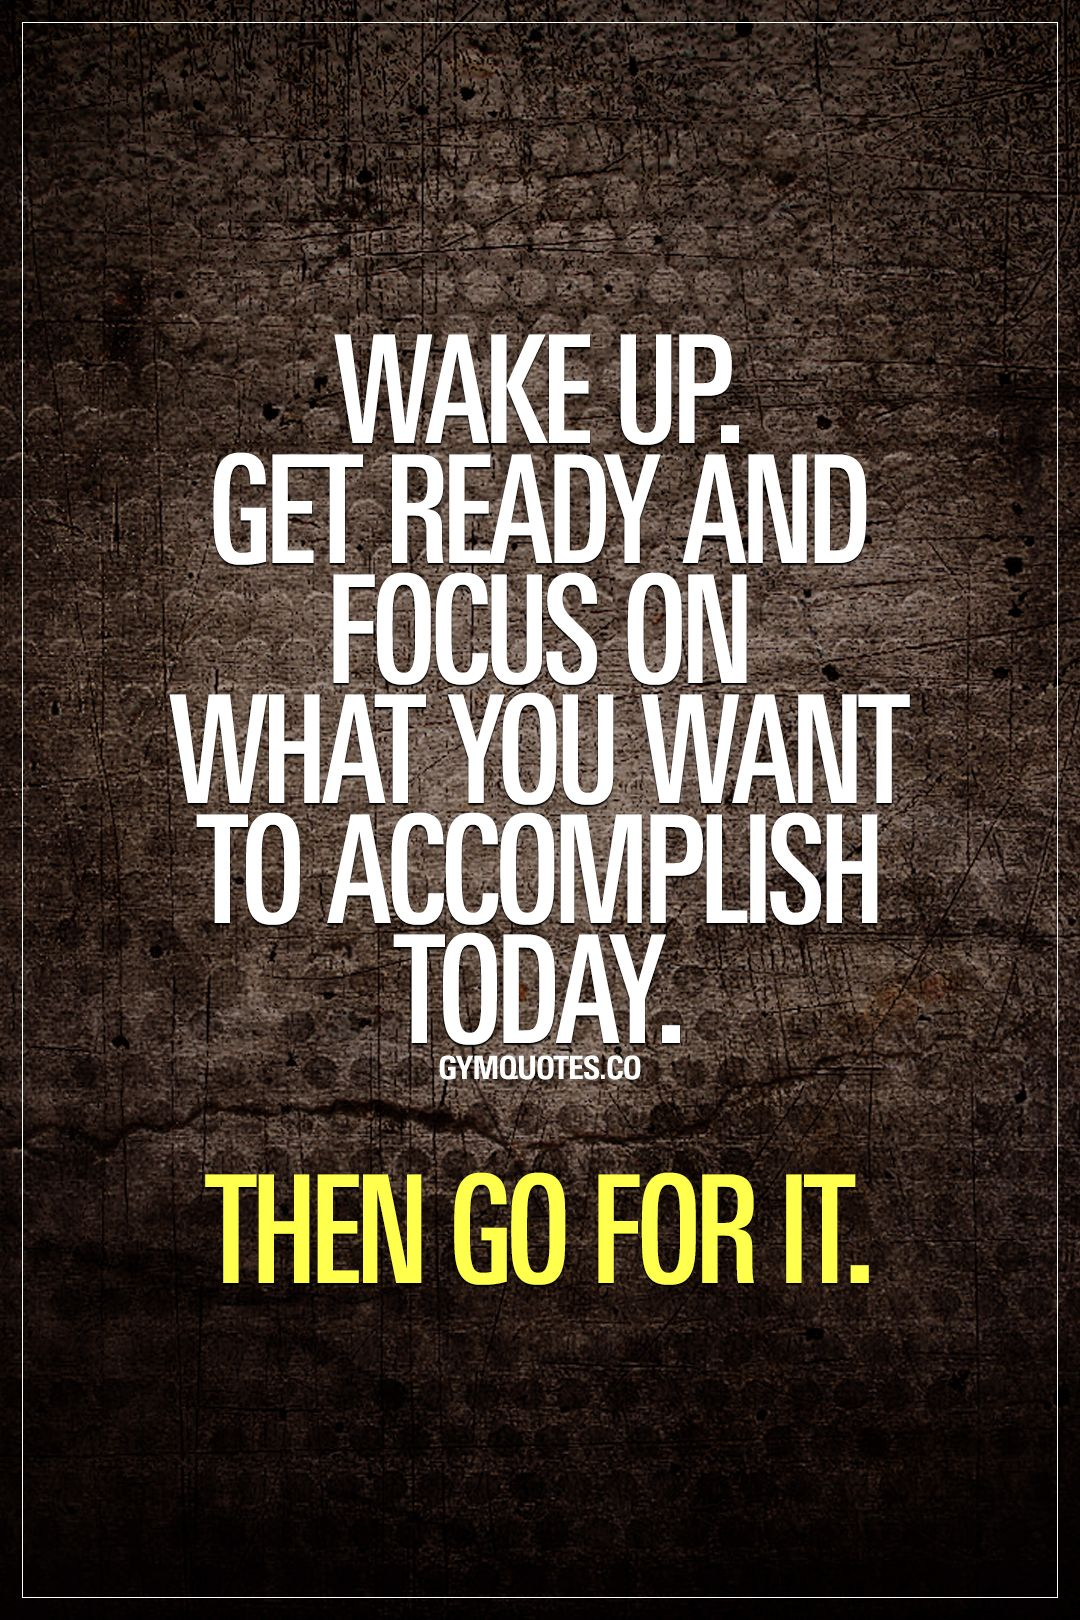 Wake up. Get ready and focus on what you want to accomplish today